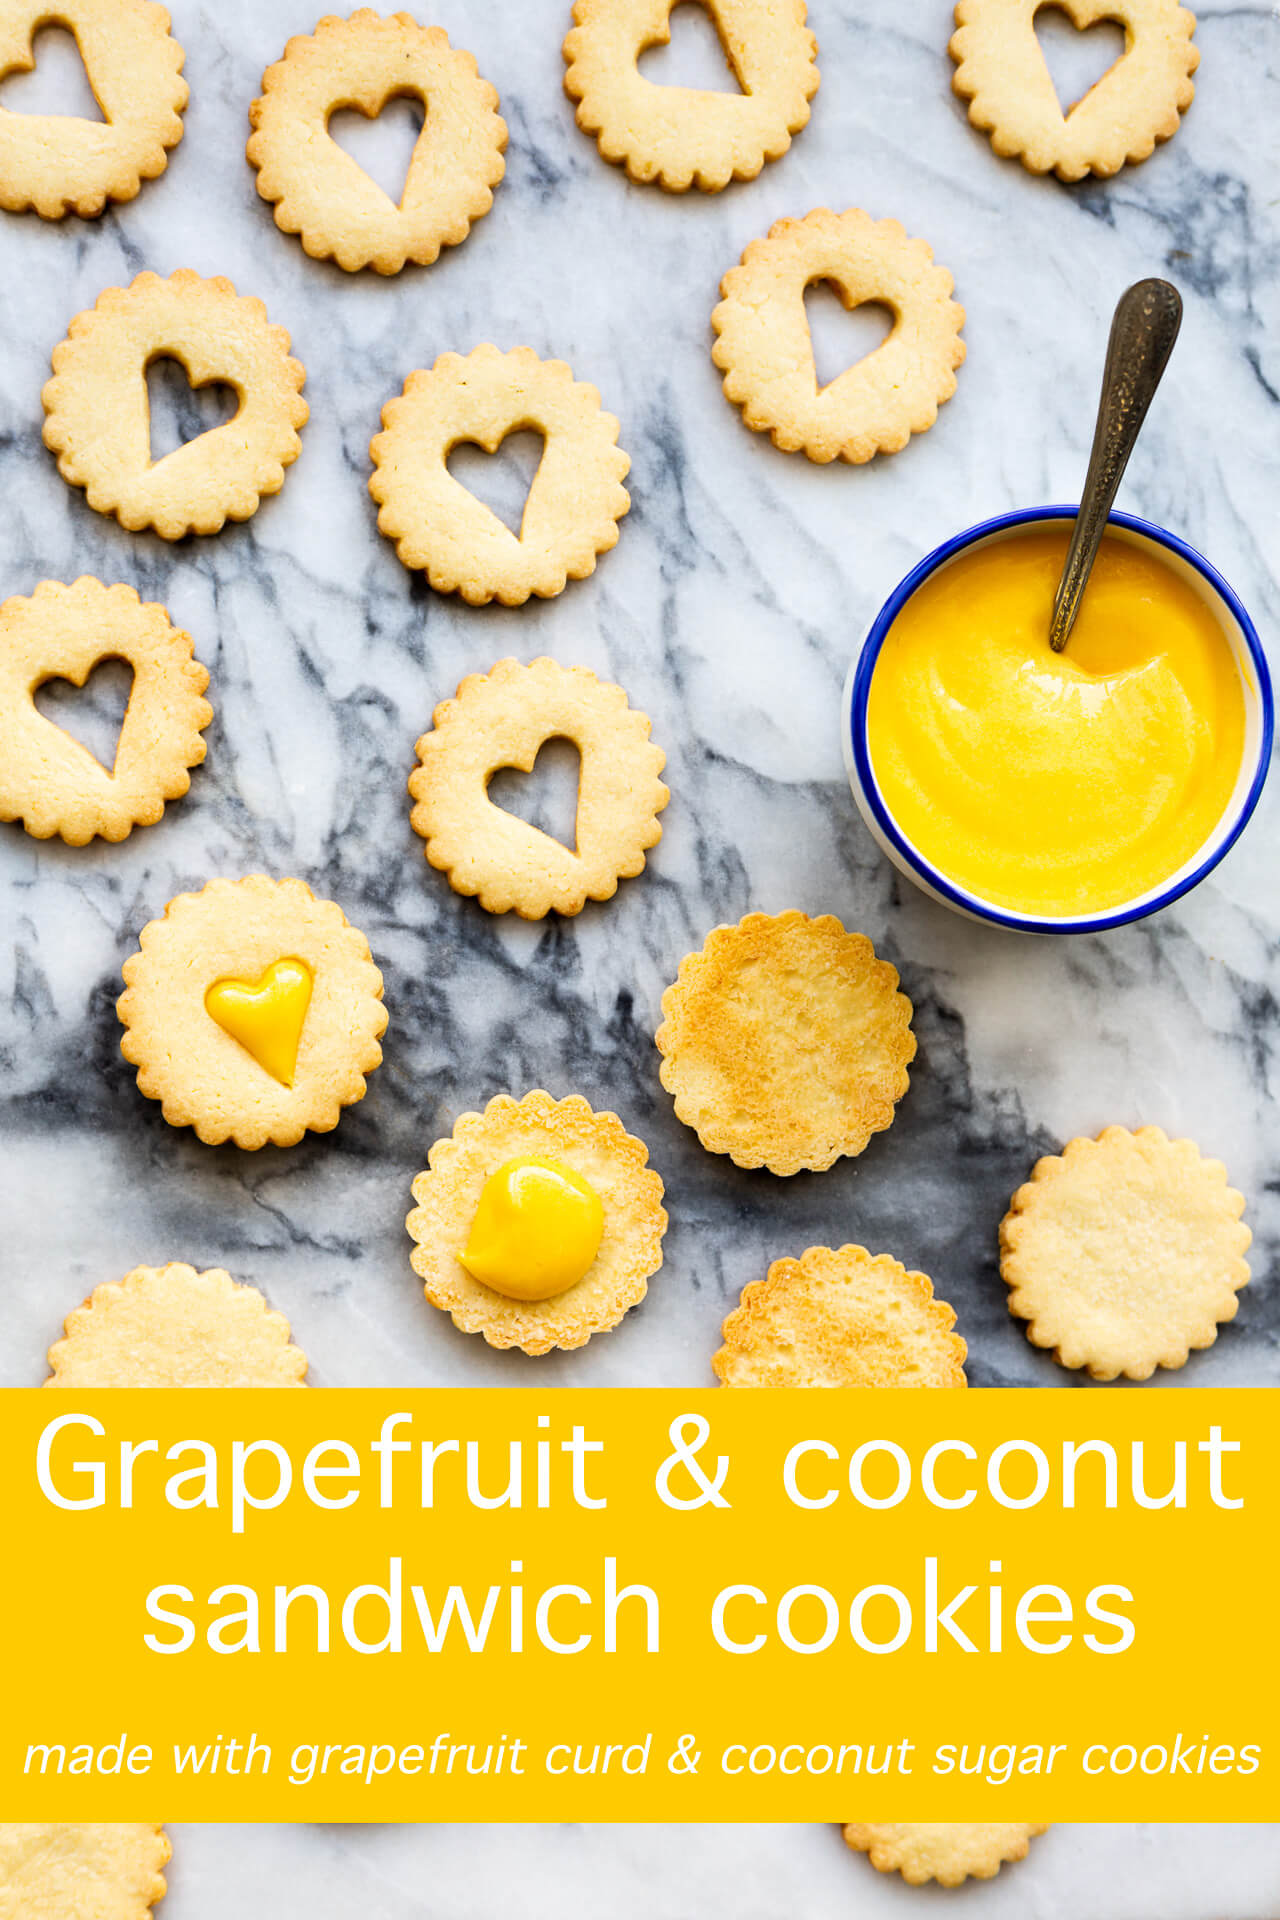 Golden buttery coconut crinkle cut round cookies with heart cut out for sandwiching with bright grapefruit curd in a bowl with a spoon